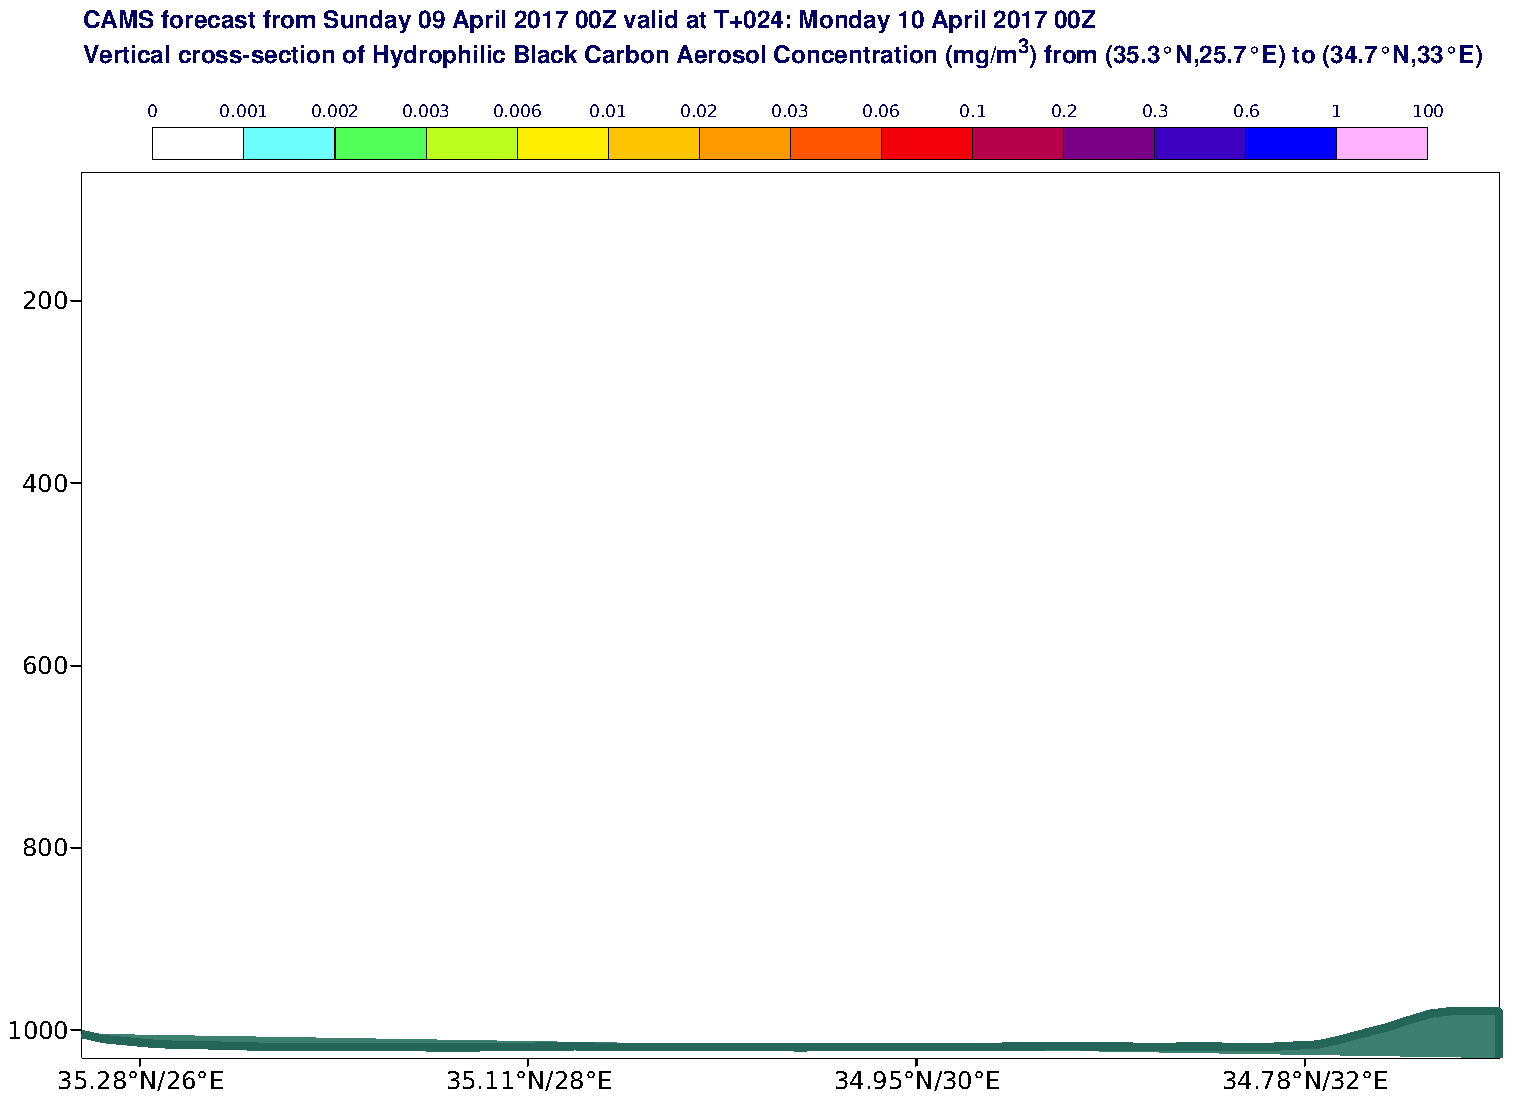 Vertical cross-section of Hydrophilic Black Carbon Aerosol Concentration (mg/m3) valid at T24 - 2017-04-10 00:00